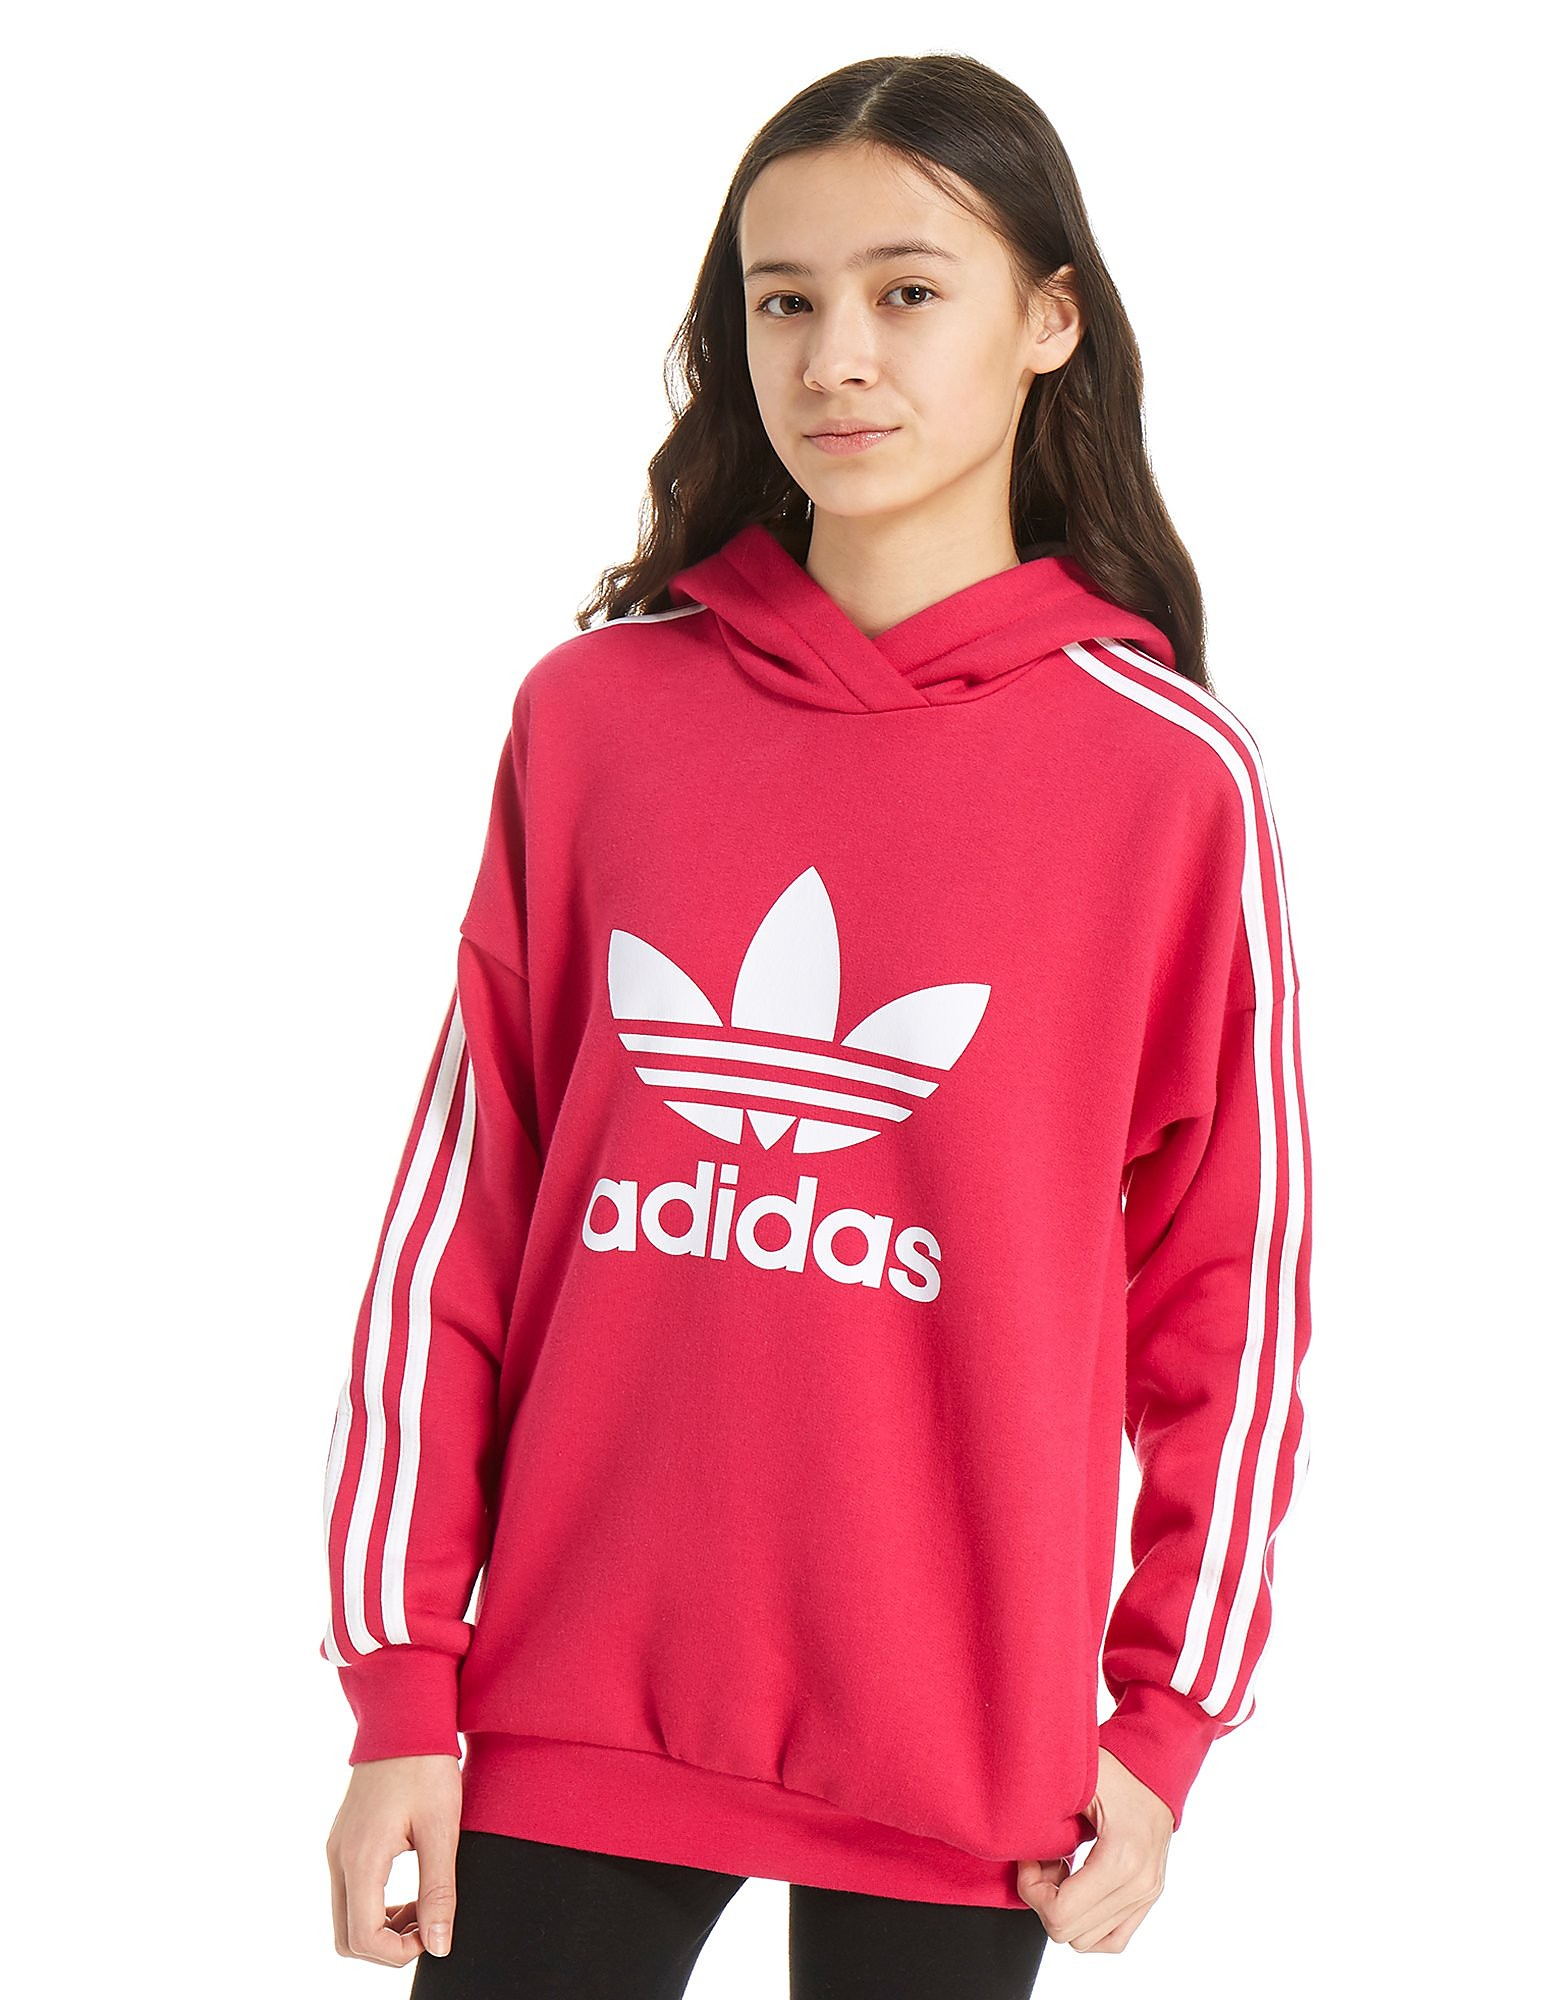 adidas Originals Girls' Trefoil Overhead Hoody Junior